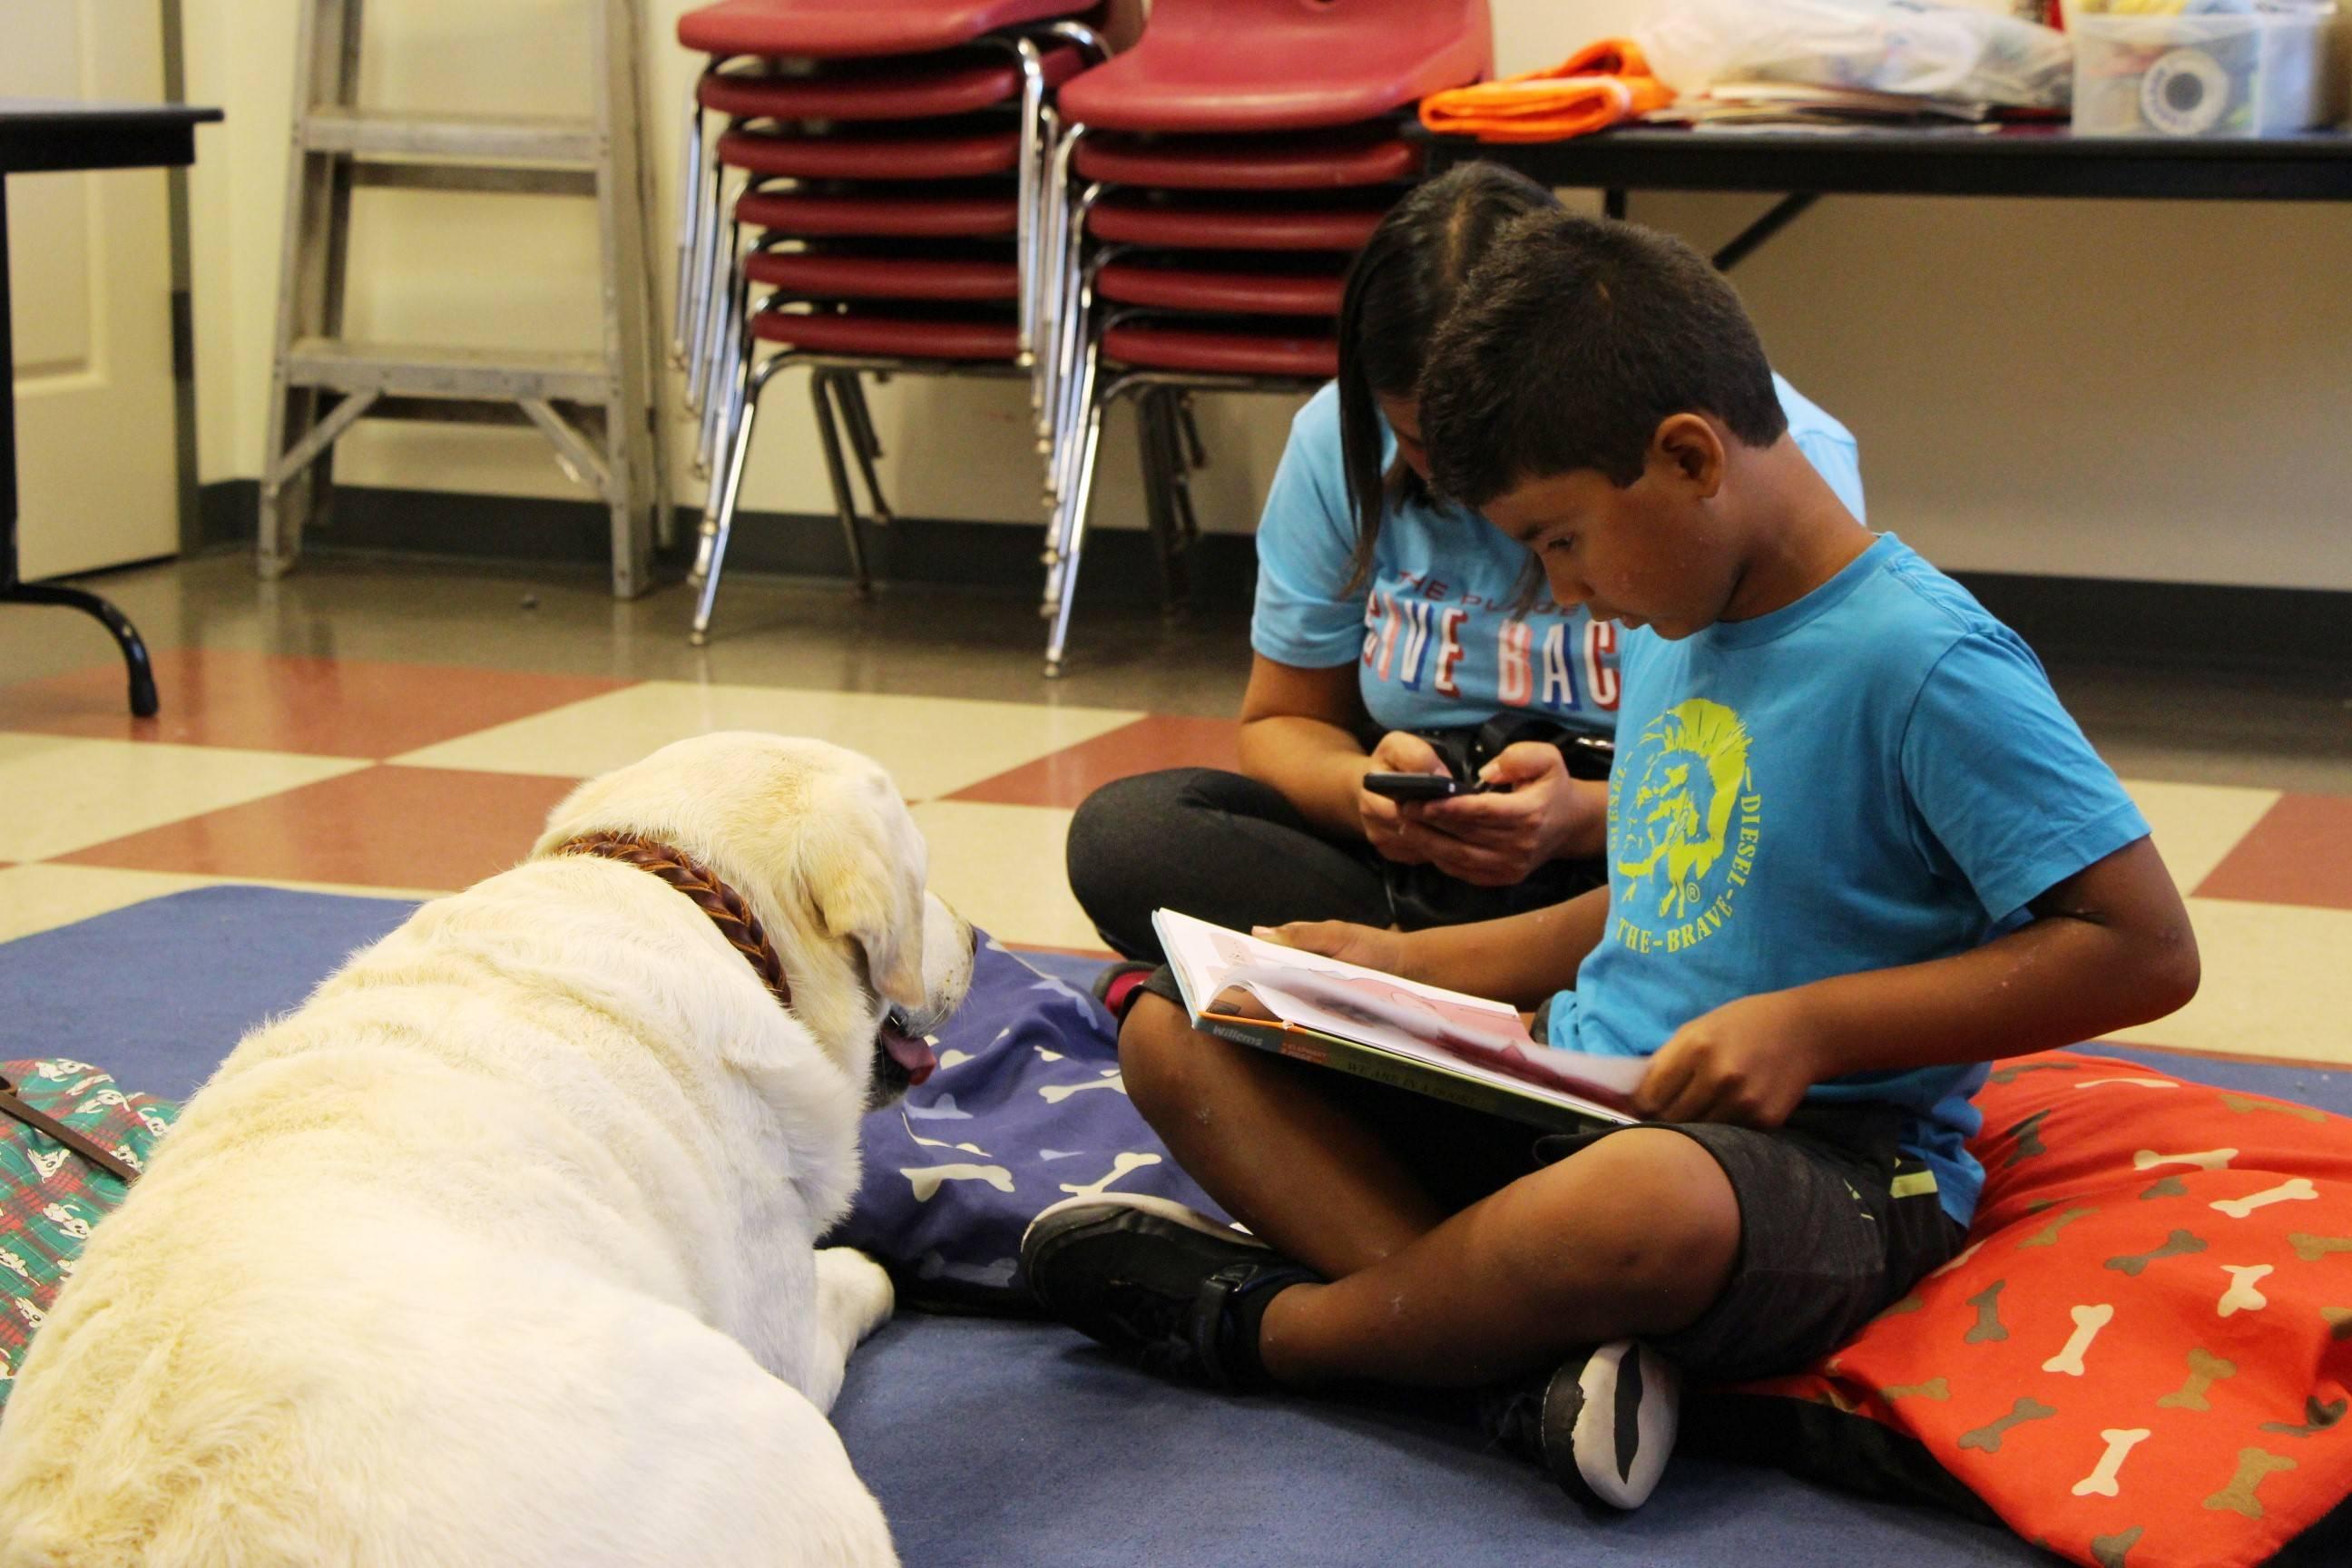 3b424836e8928b415d23_EDIT_boy_reads_to_dog.jpg